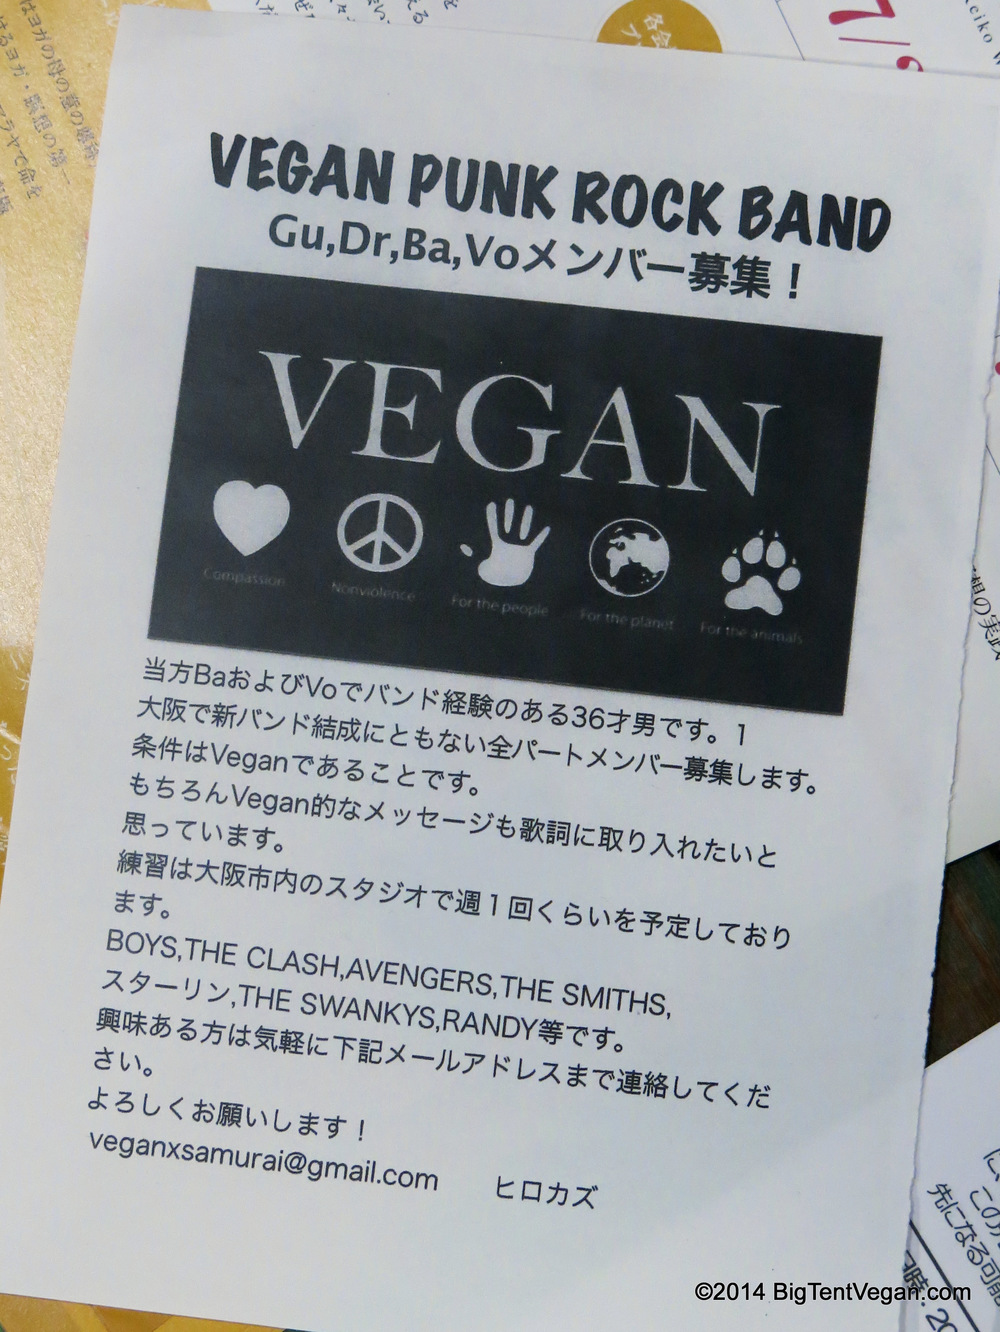 Flyer for a Vegan Punk Rock Band -- we didn't get a chance to see them, but we thought the flyer was cool.